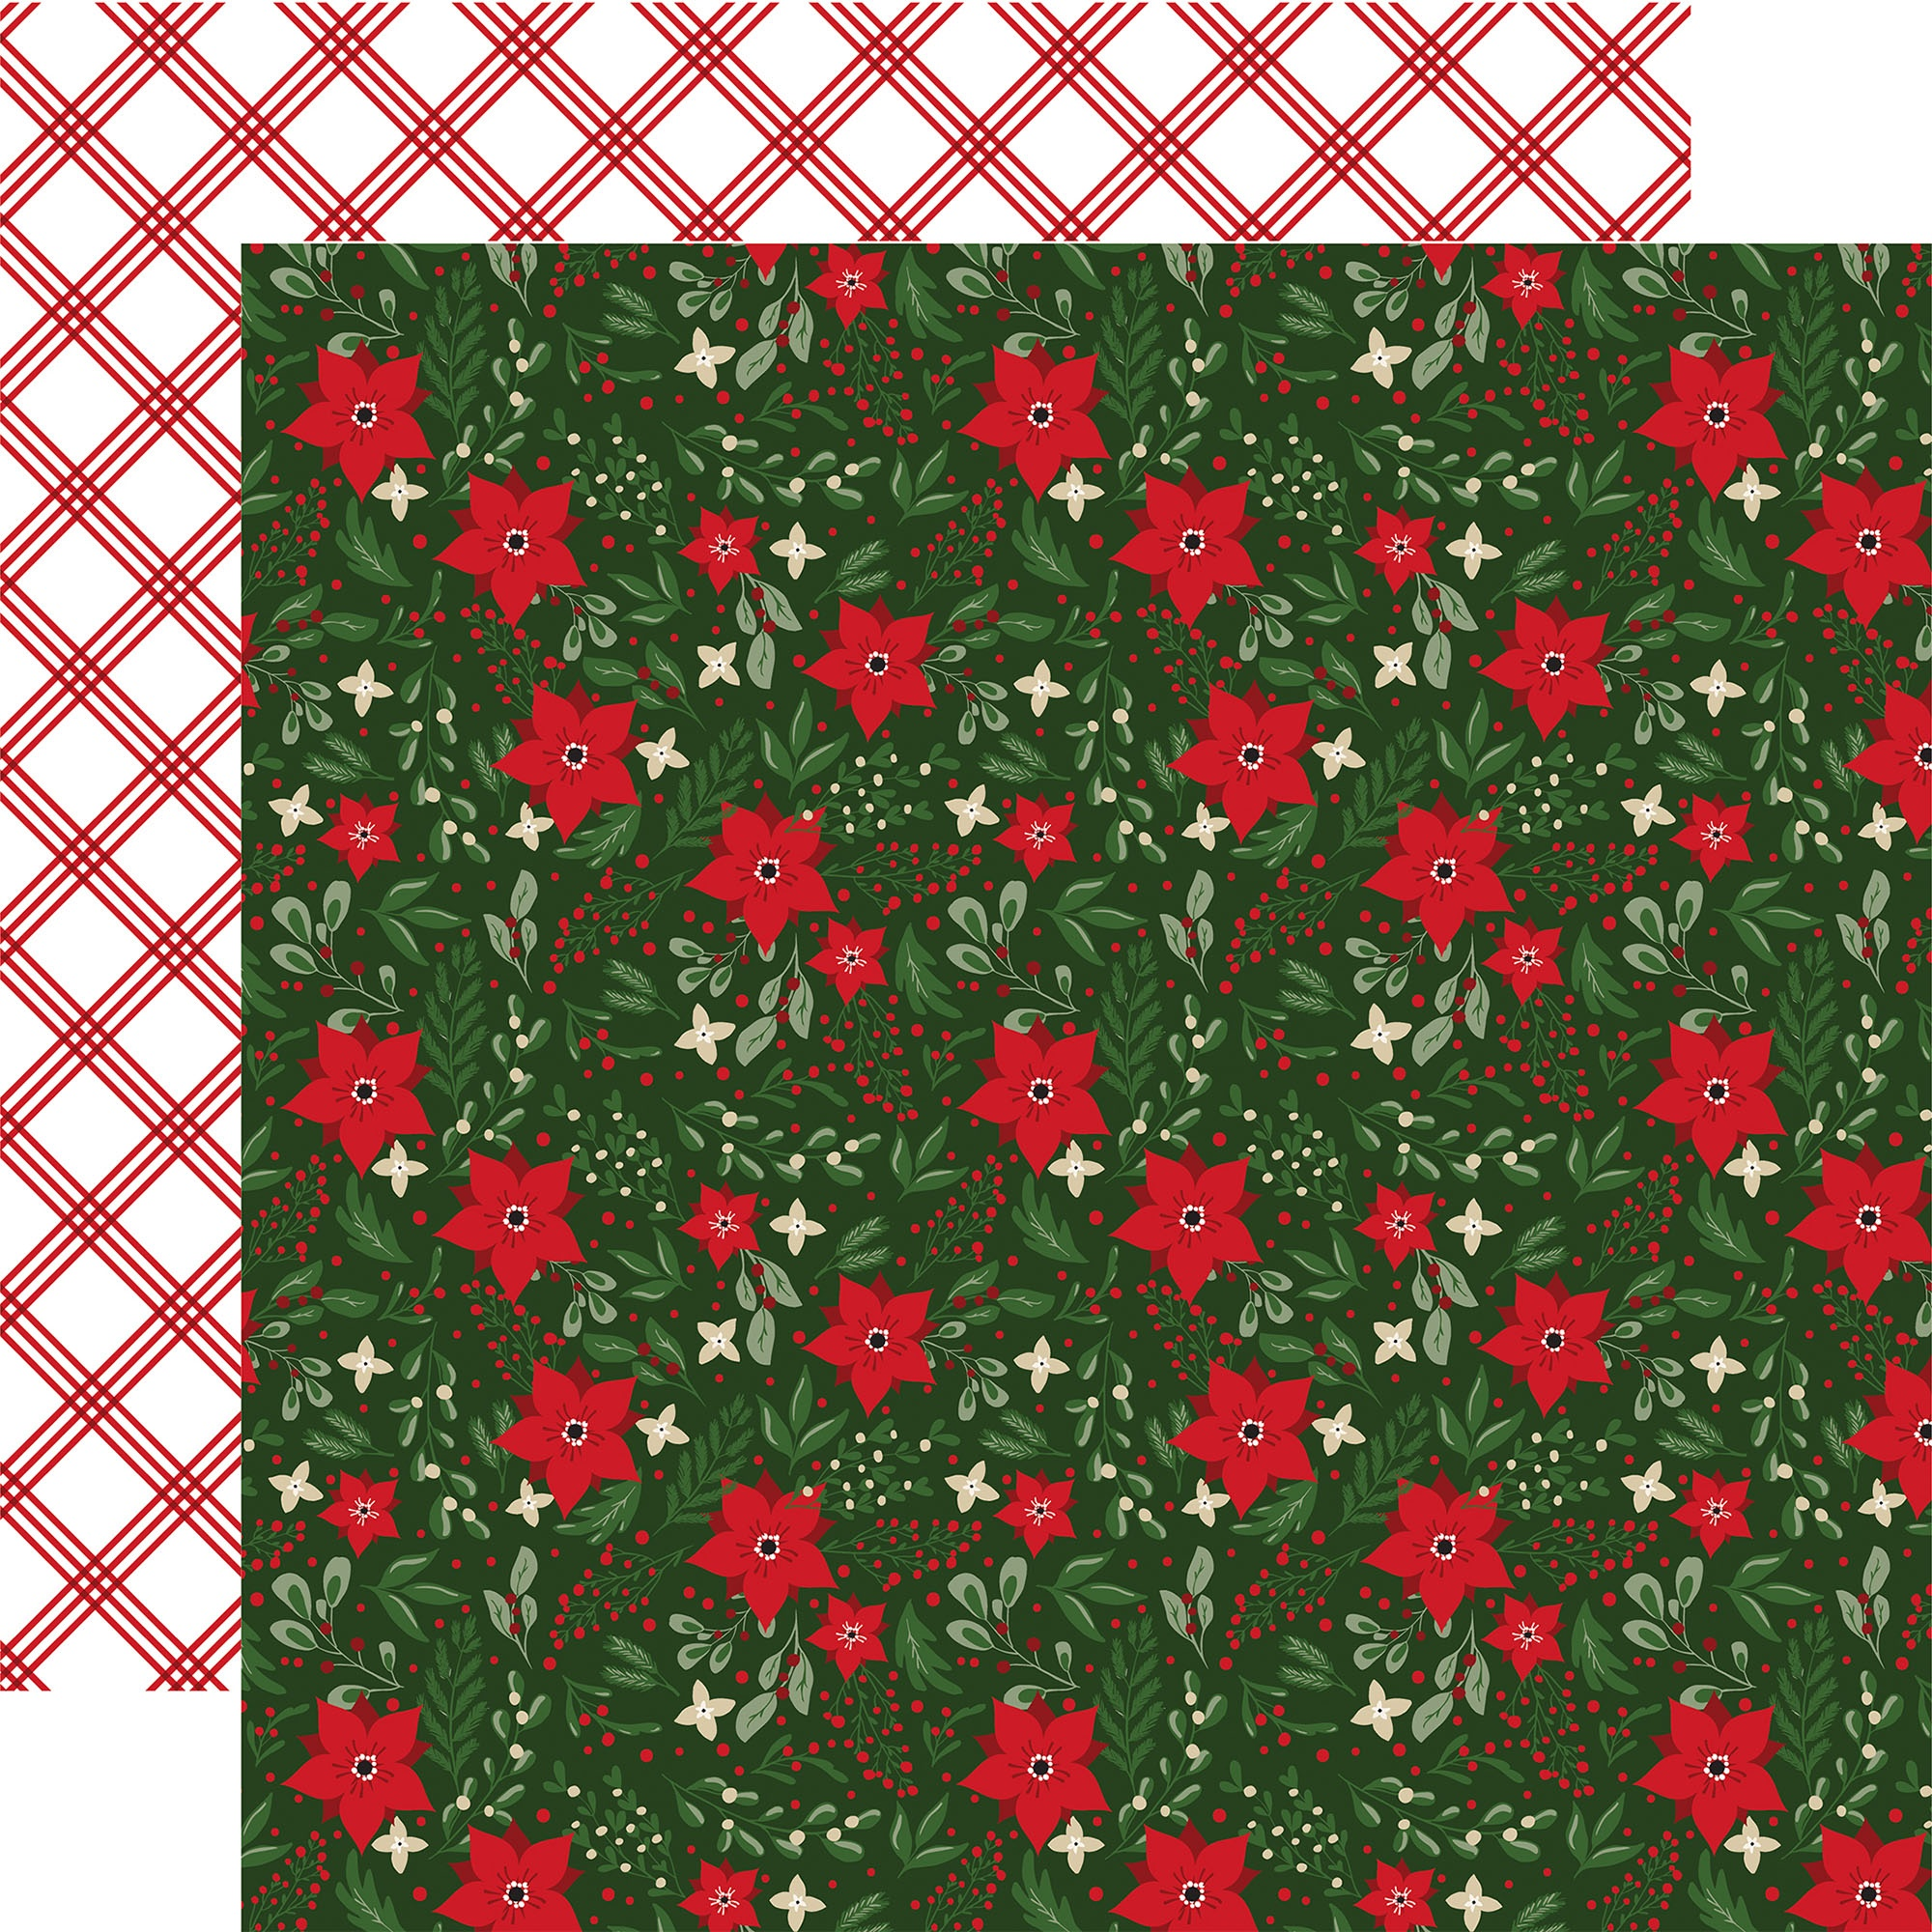 Echo Park - Jingle All The Way - FESTIVE FLORAL - 12x12 Double-Sided Paper